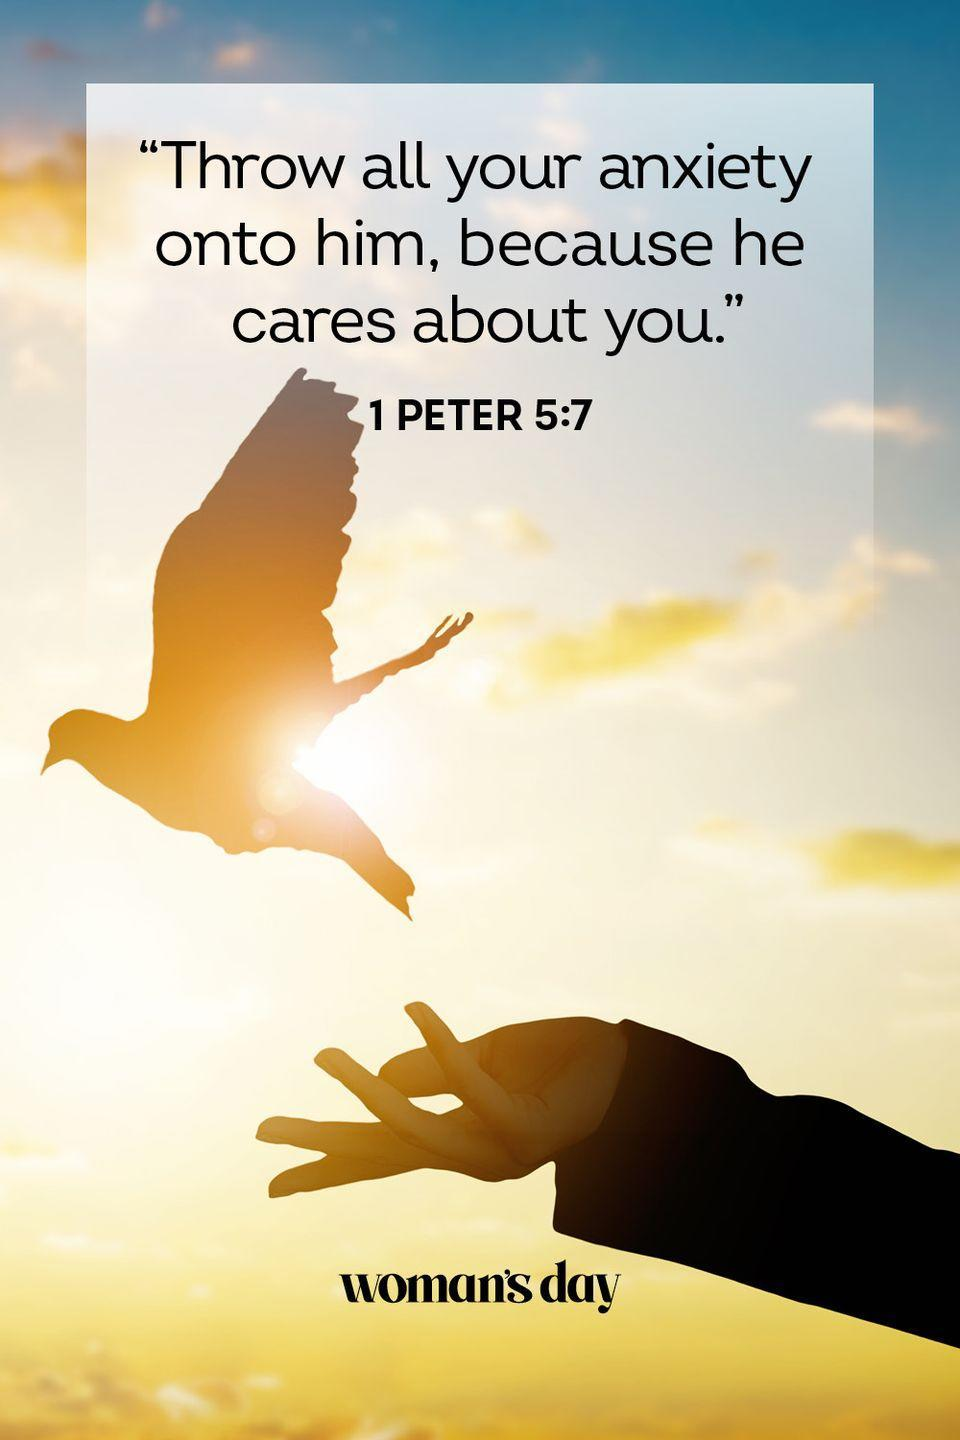 """<p>""""Throw all your anxiety onto him, because he cares about you.""""</p><p><strong>The Good News: </strong>Not only does God not want you to worry, but He wants you to put your worries onto Him to deal with. He will take that burden away from you.</p>"""